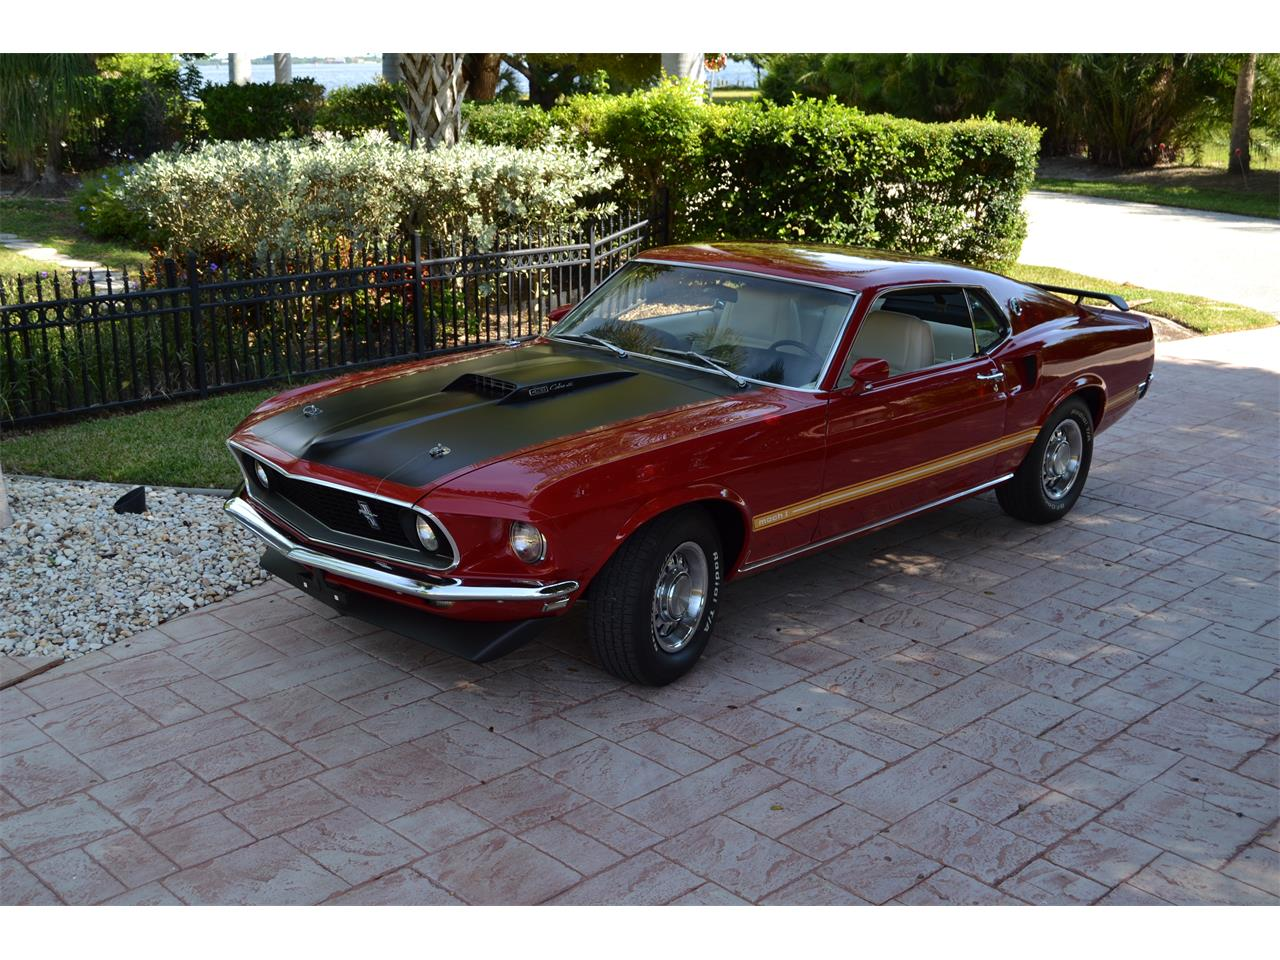 Large Picture of 1969 Mustang Mach 1 located in Punta Gorda Florida - FQAH